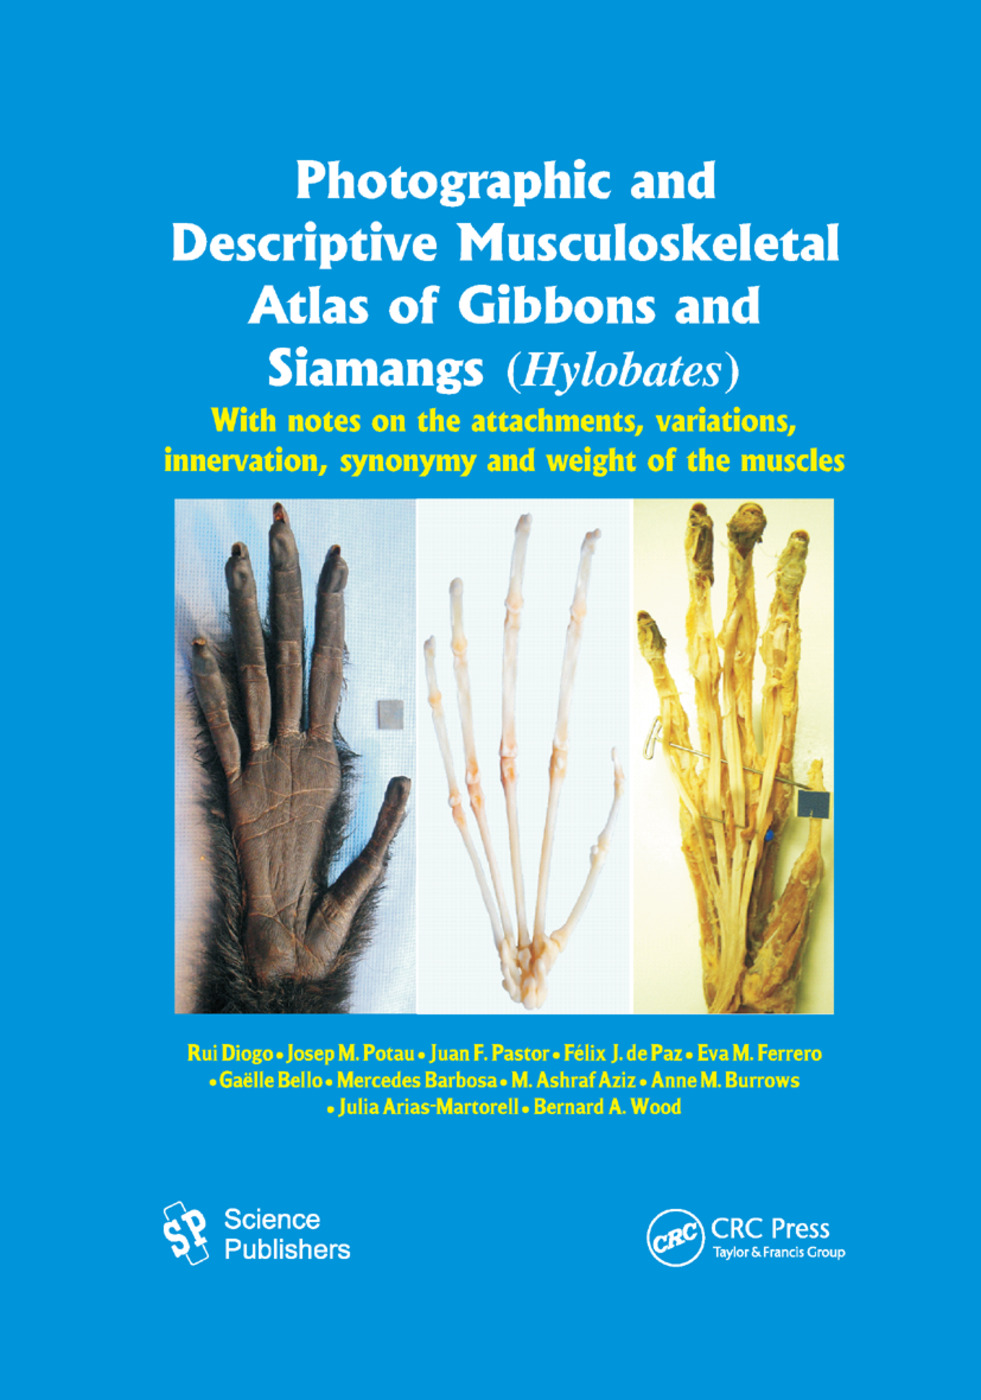 Photographic and Descriptive Musculoskeletal Atlas of Gibbons and Siamangs (Hylobates): With Notes on the Attachments, Variations, Innervation, Synonymy and Weight of the Muscles, 1st Edition (Paperback) book cover